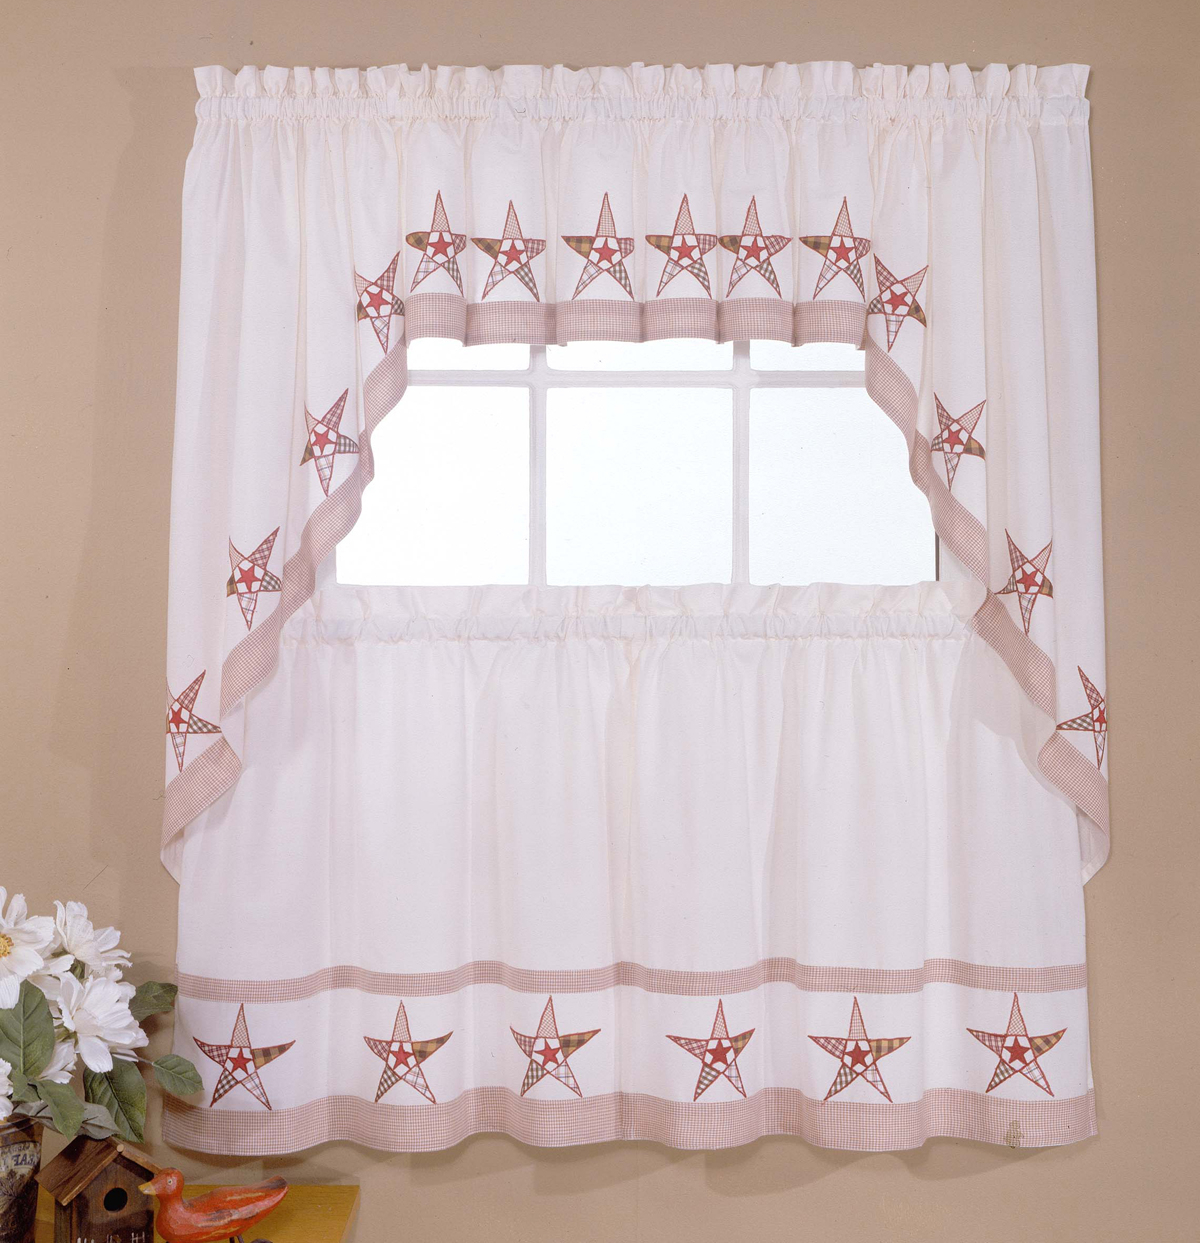 Preferred Classic Kitchen Curtain Sets In Designer Kitchen Curtains – Thecurtainshop (View 9 of 20)